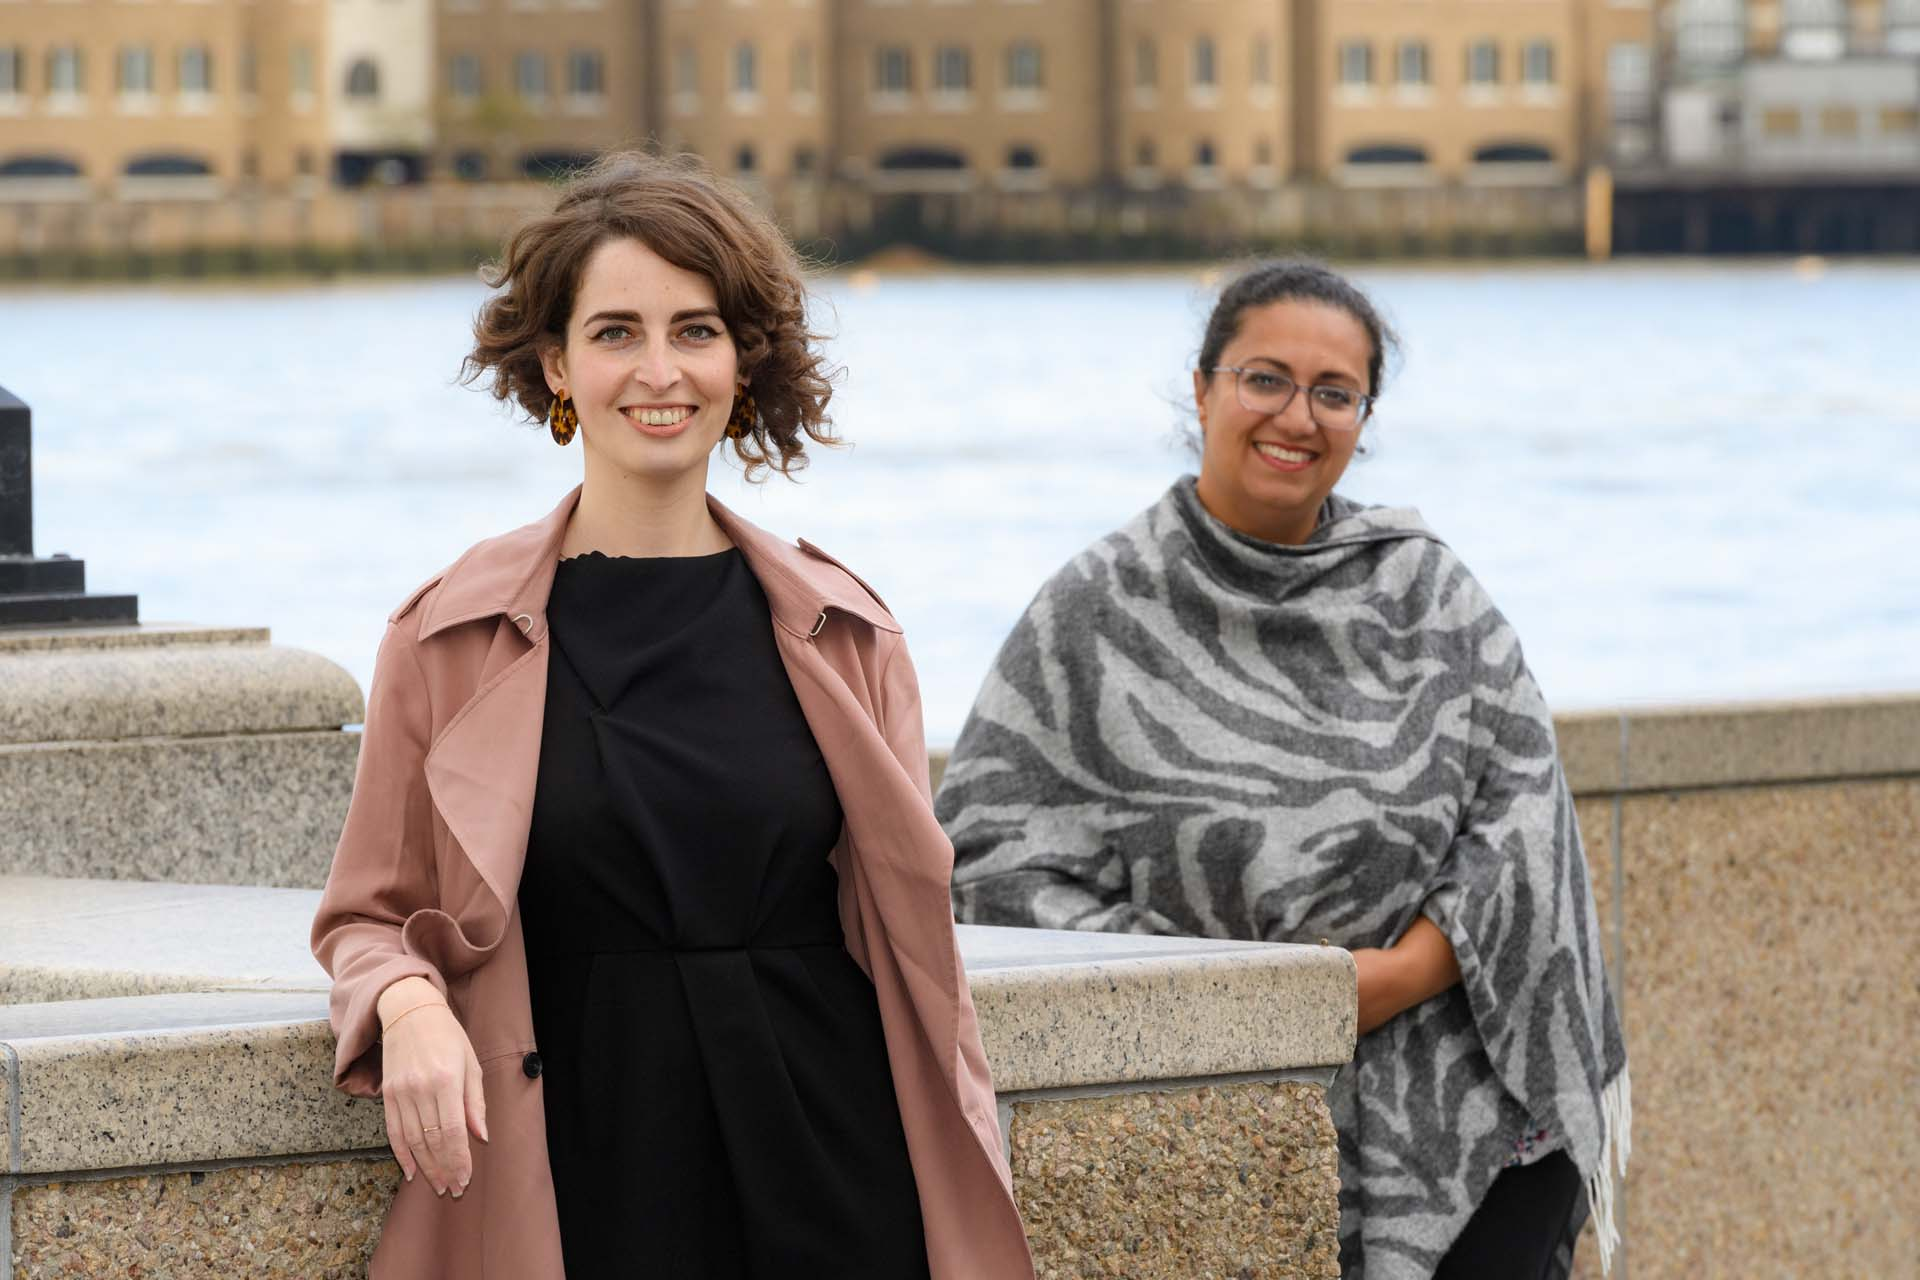 Luisa Porritt and Hina Bokhari